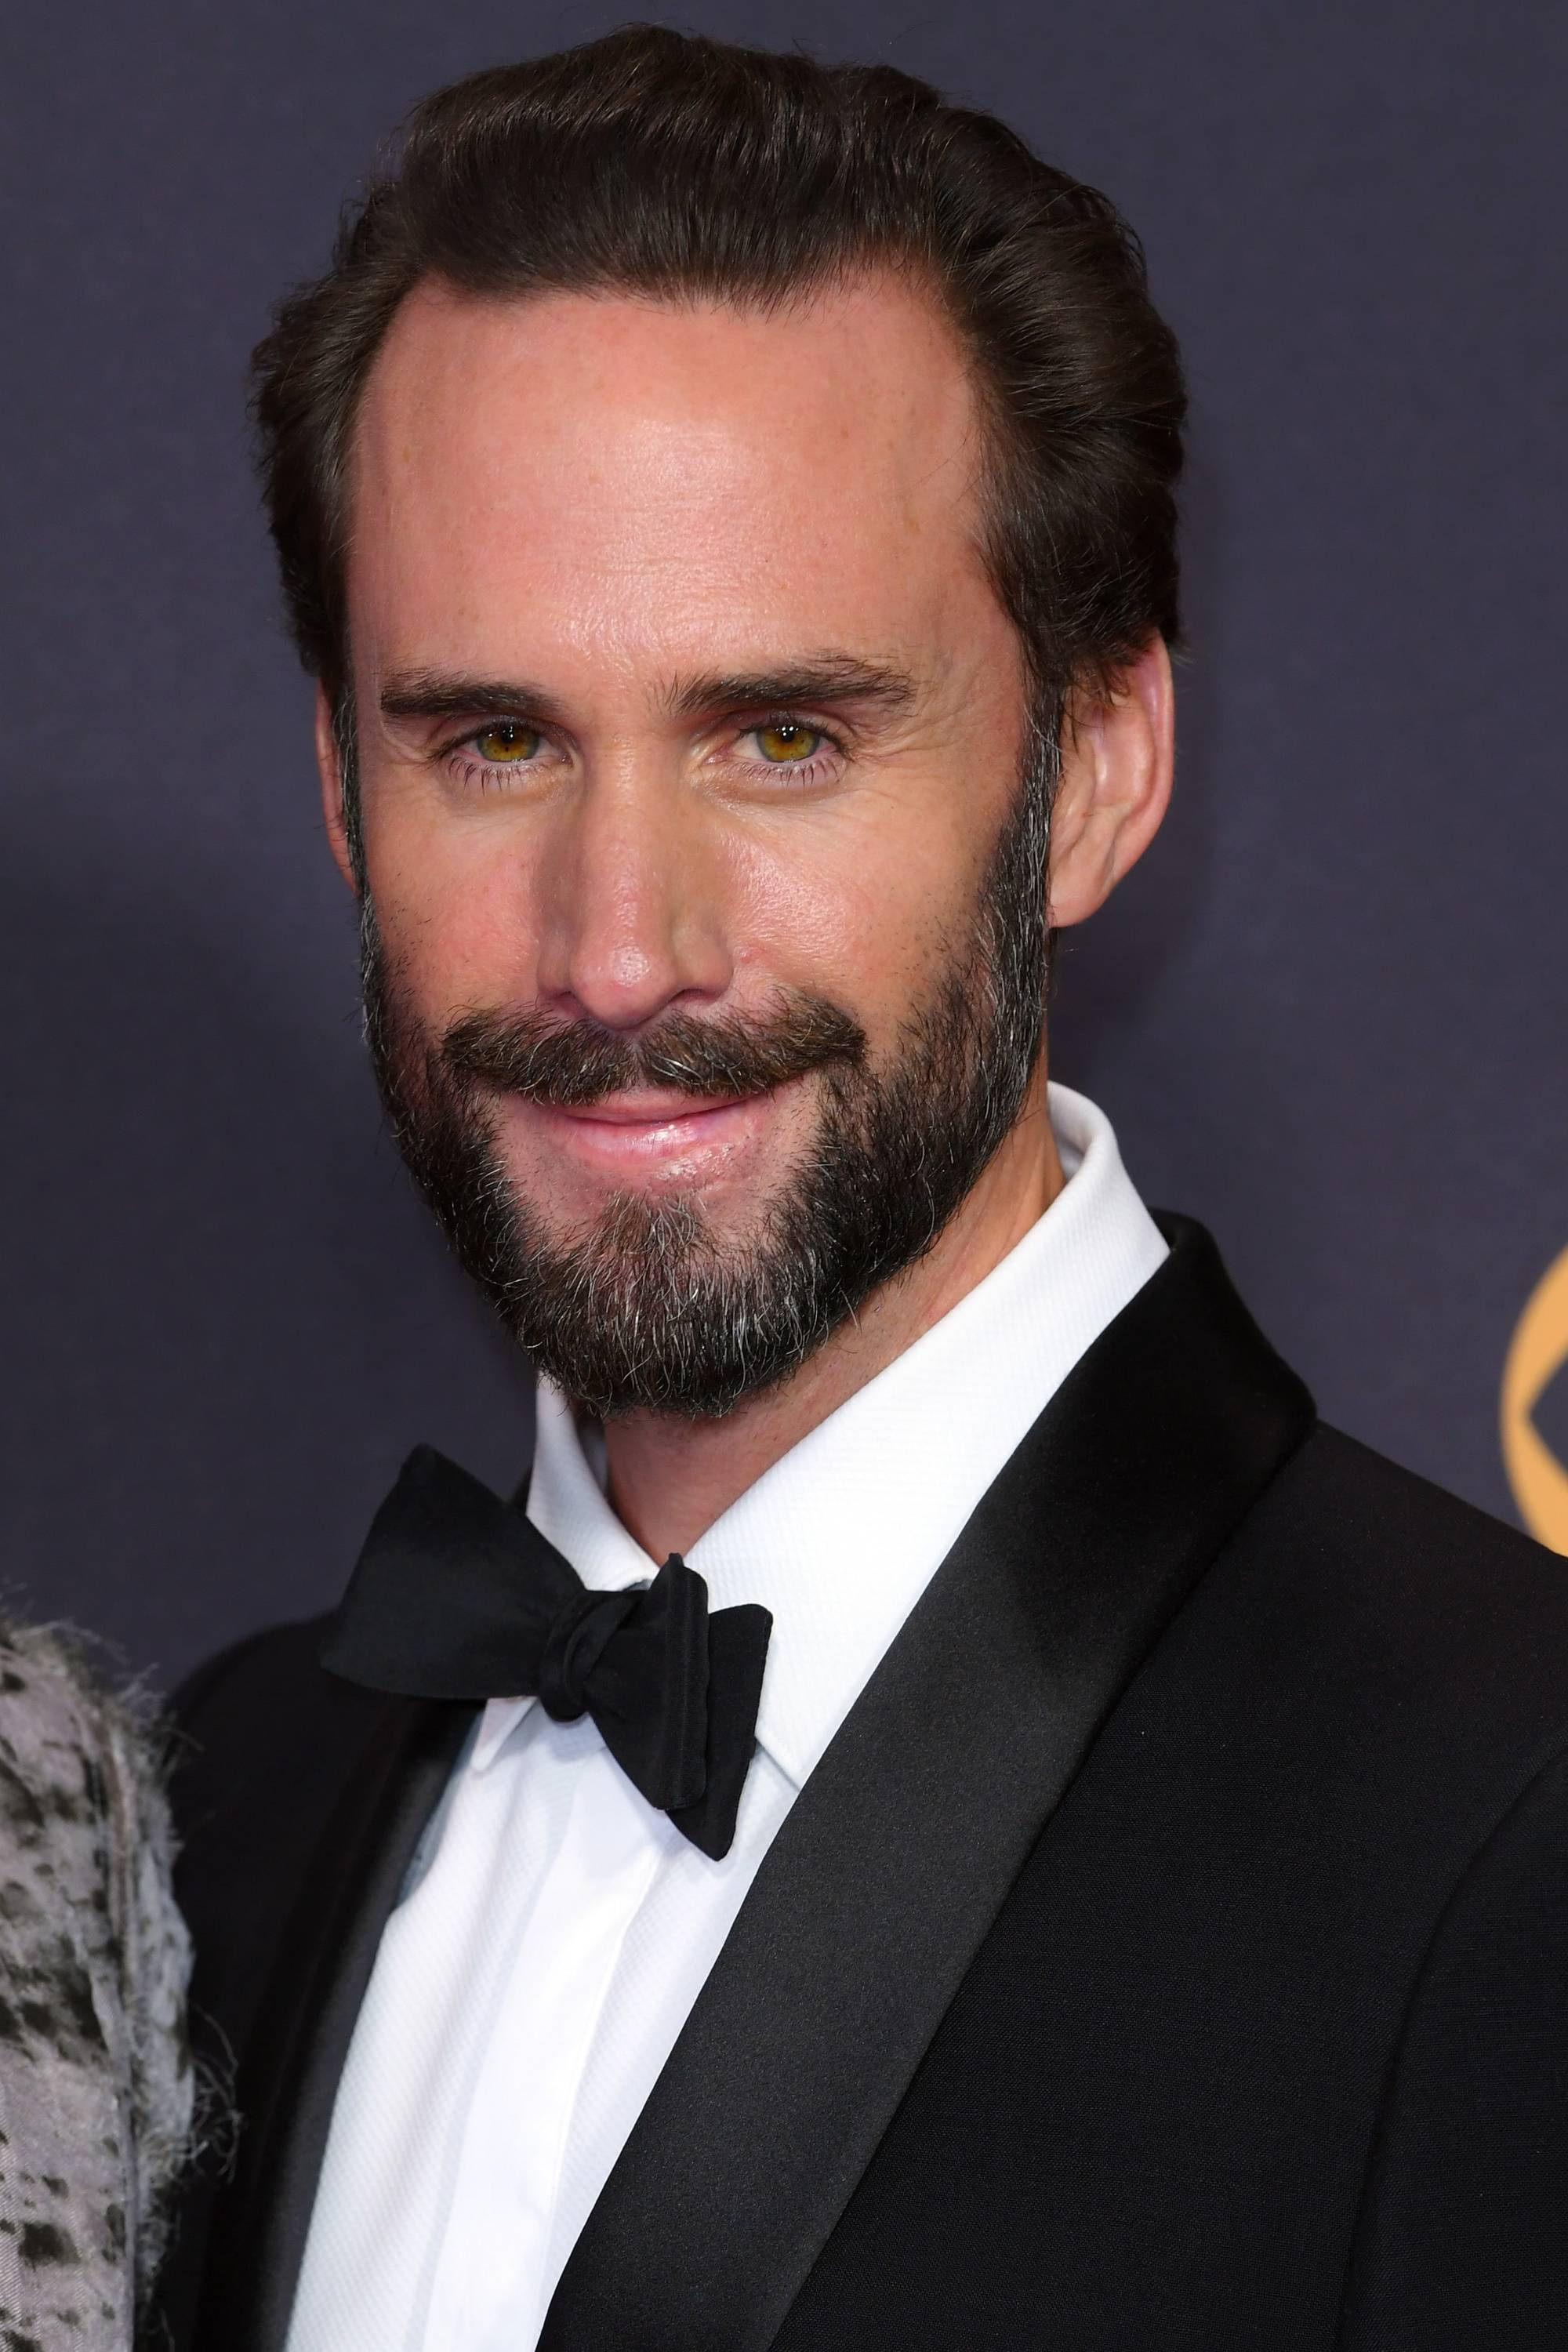 Emmy Awards 2017: Joseph Finnes with dark brown hair smoothed back